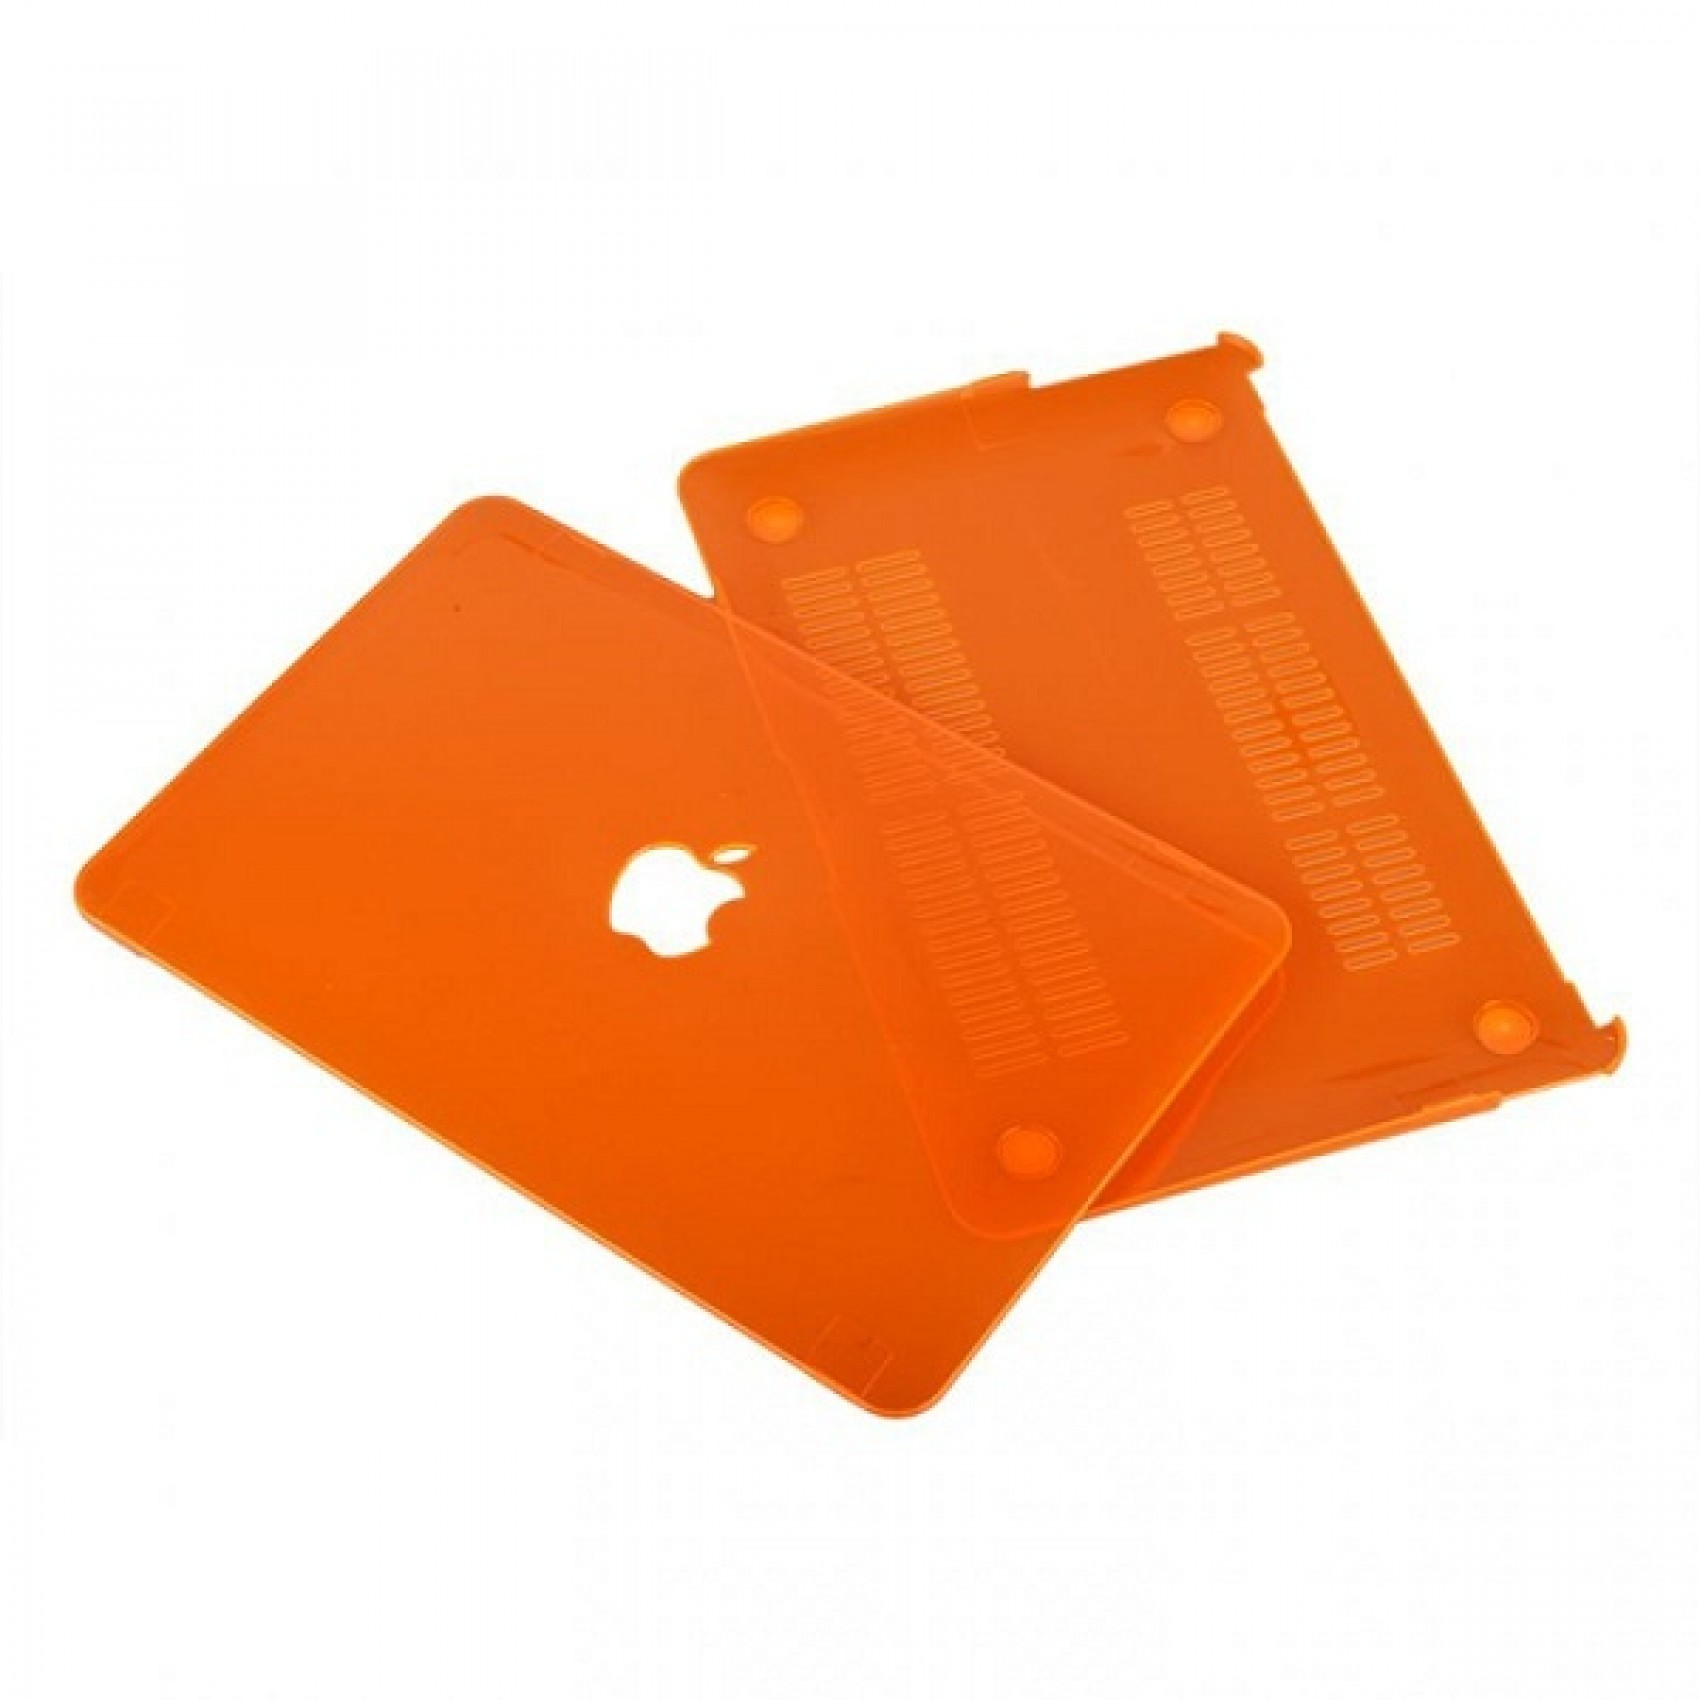 macbook-plastic-case-orange